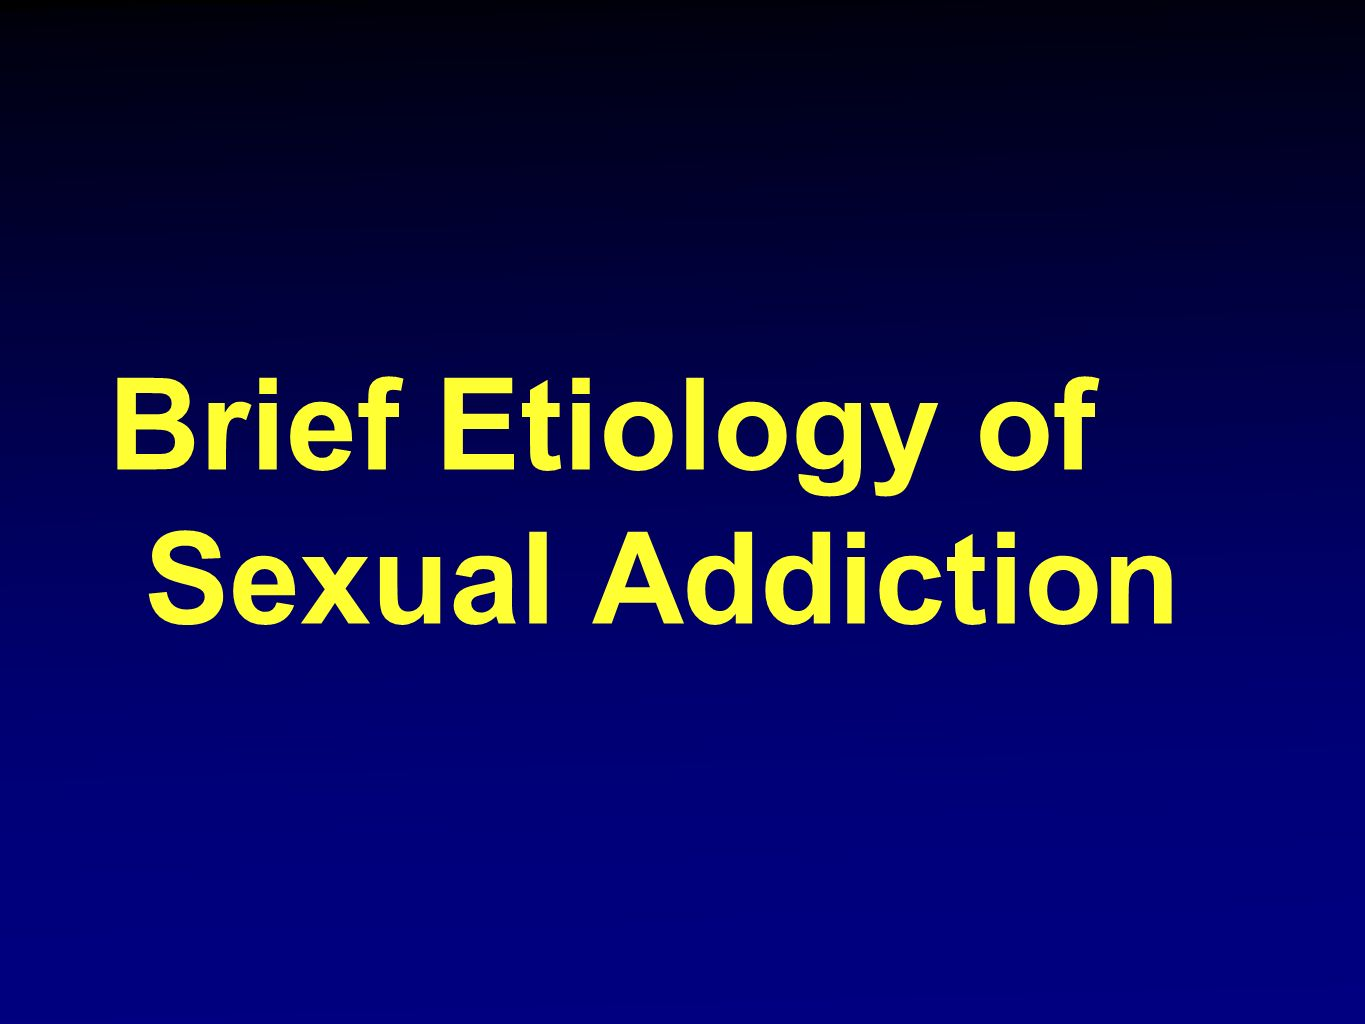 Brief Etiology of Sexual Addiction